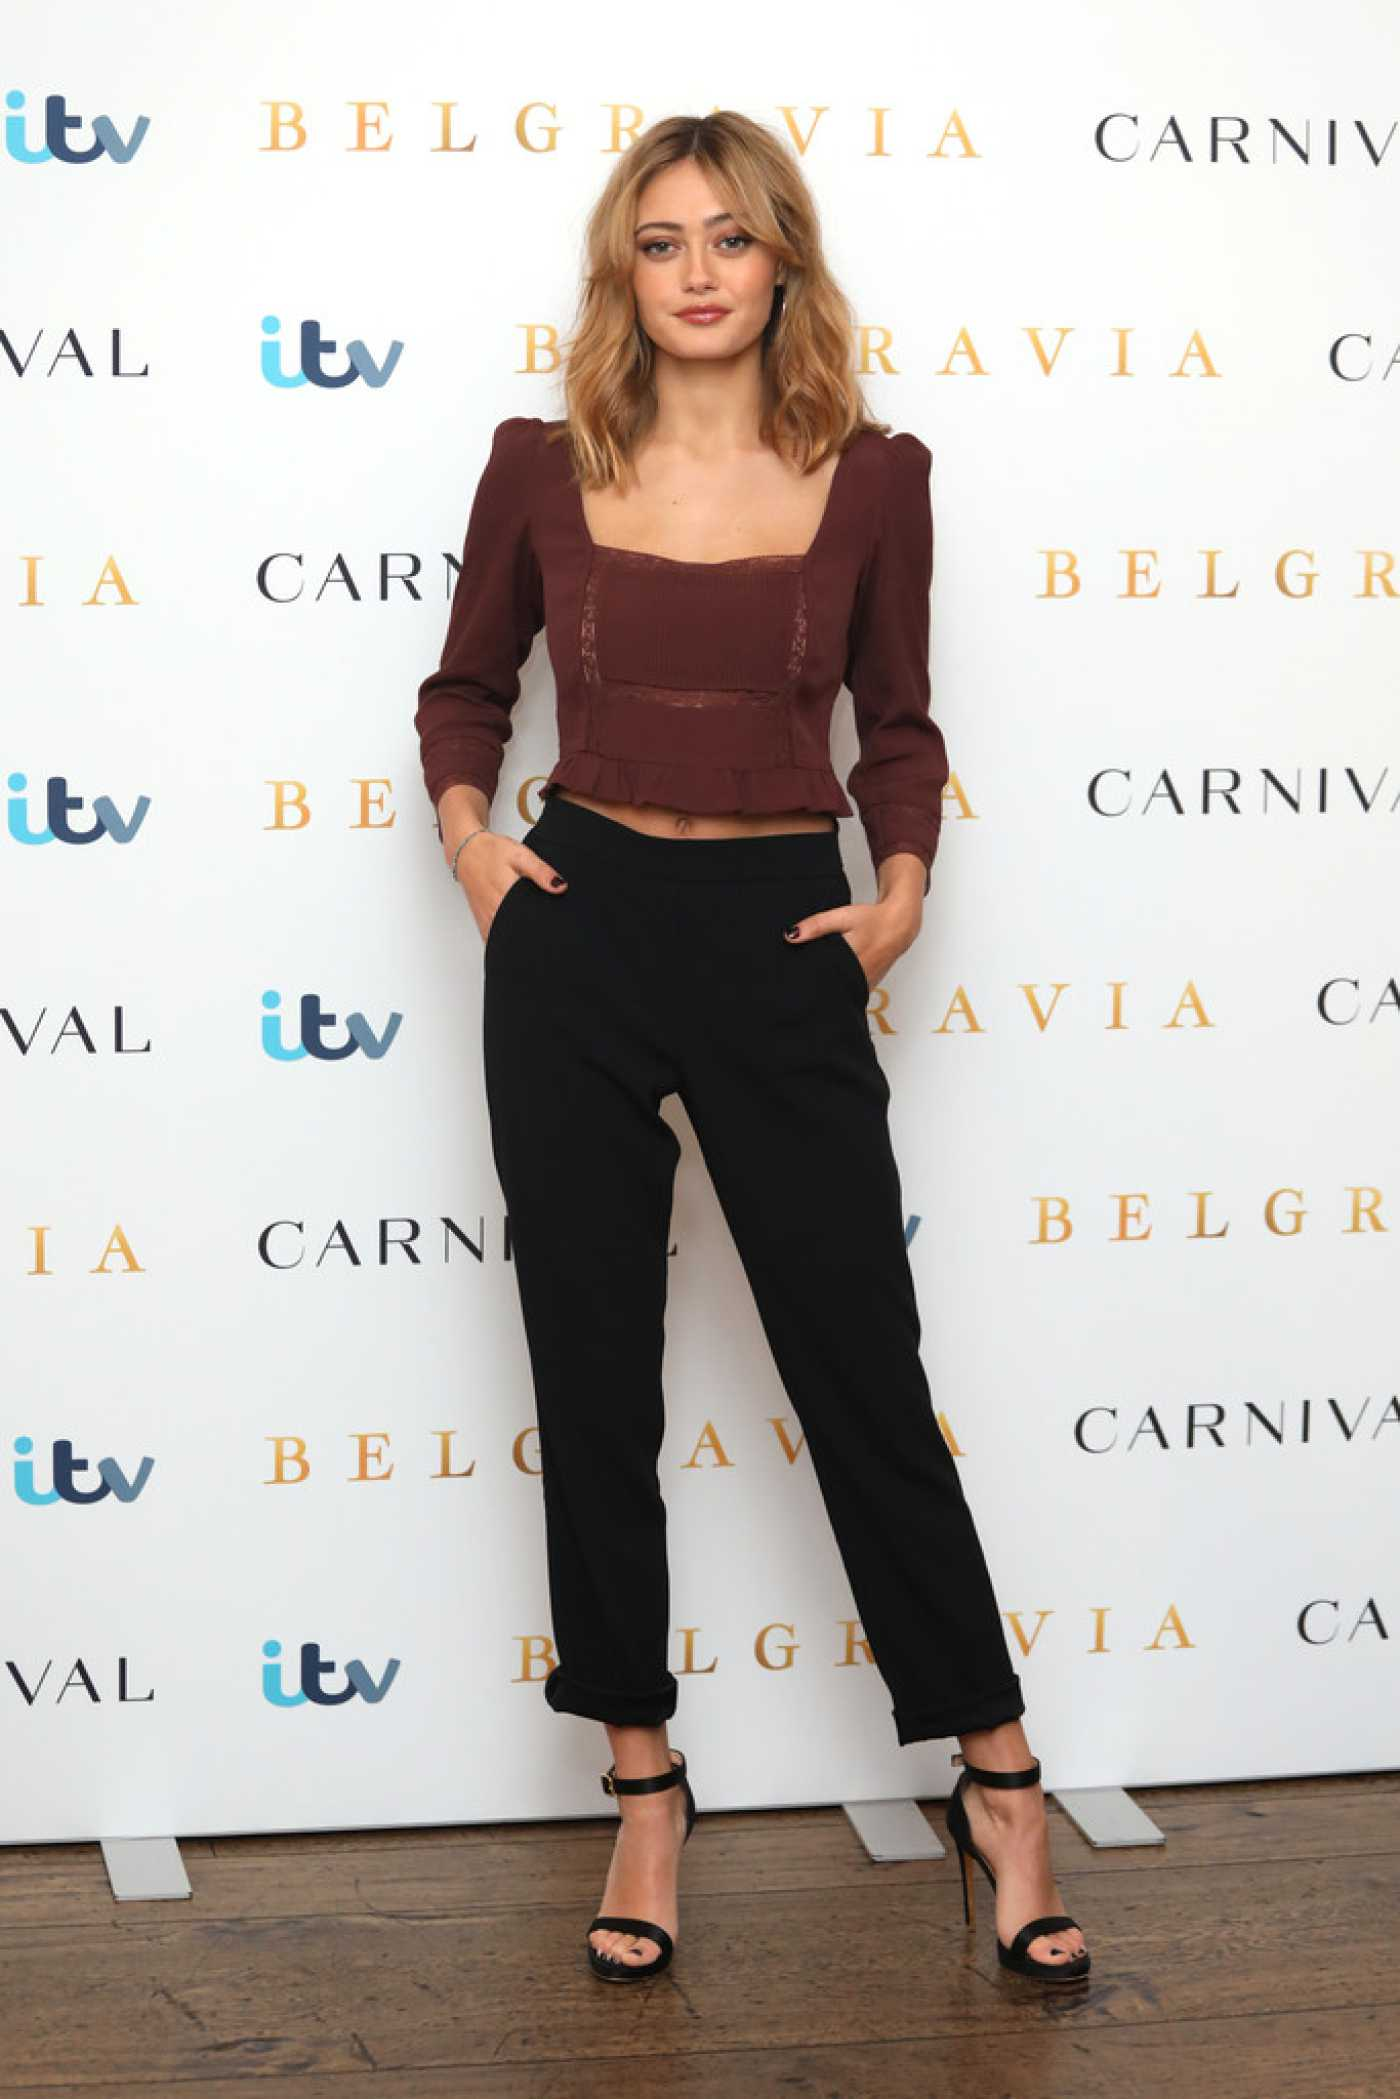 Ella Purnell Attends the Belgravia Photocall in London 02/16/2020